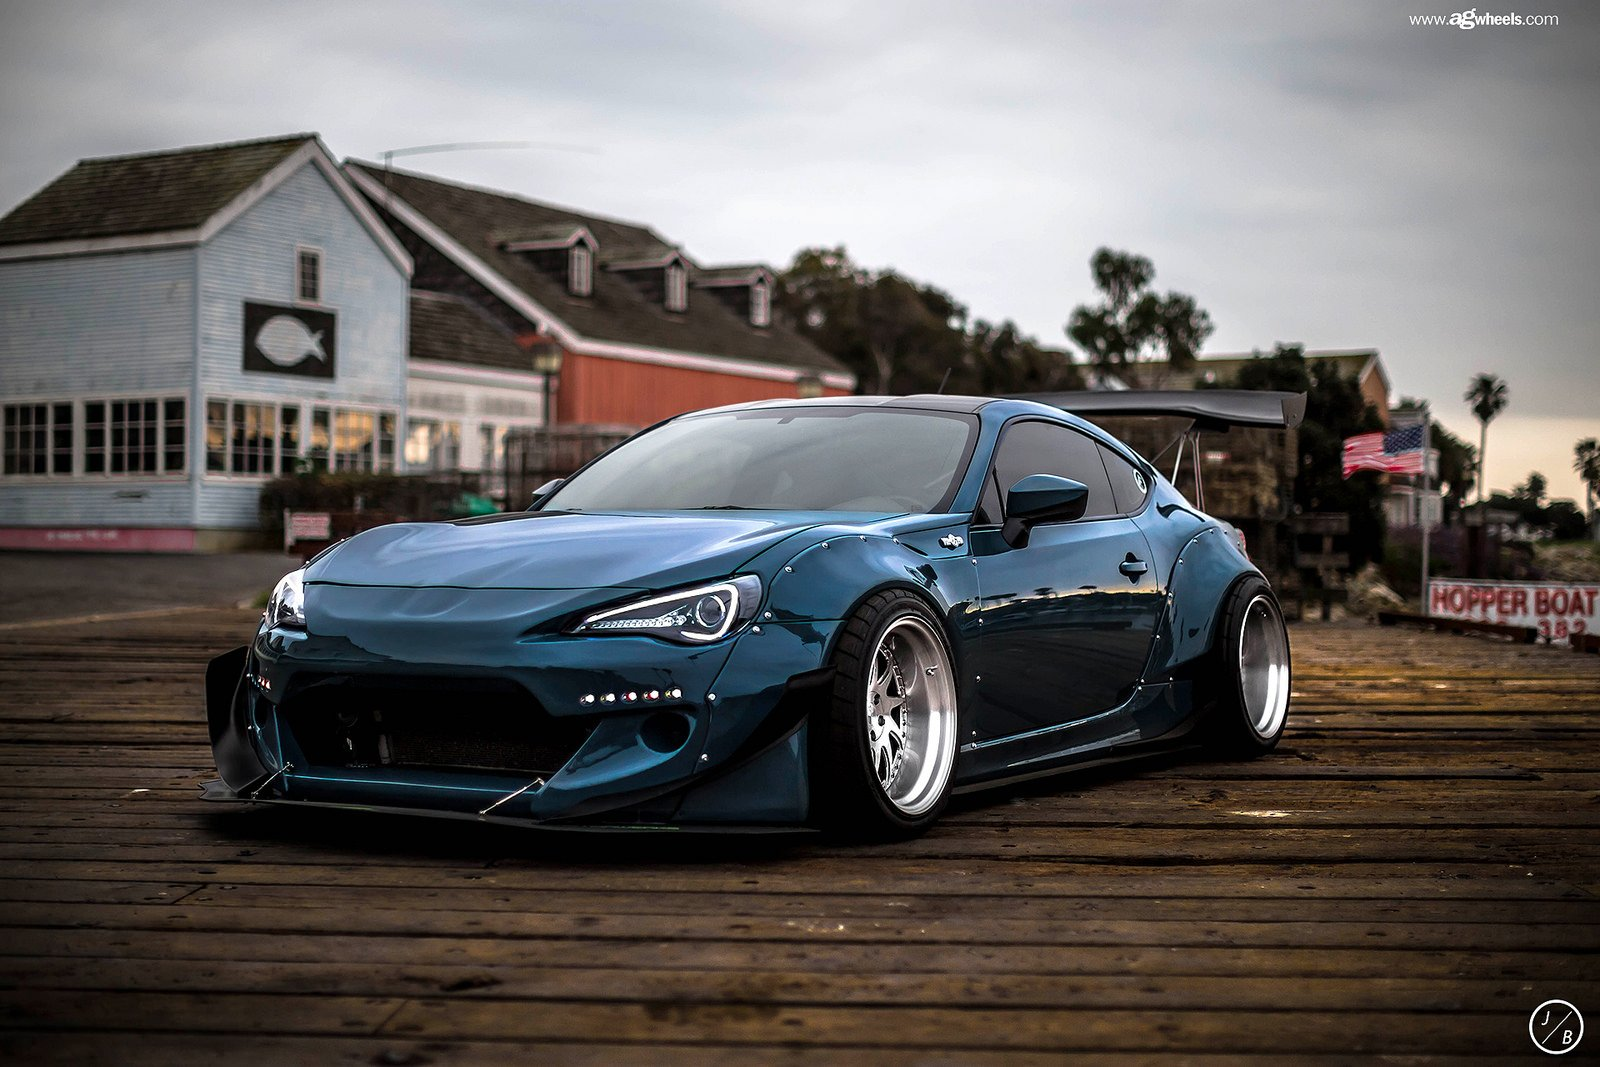 Scion Frs Rocket Bunny Wallpaper Wallpapersafari